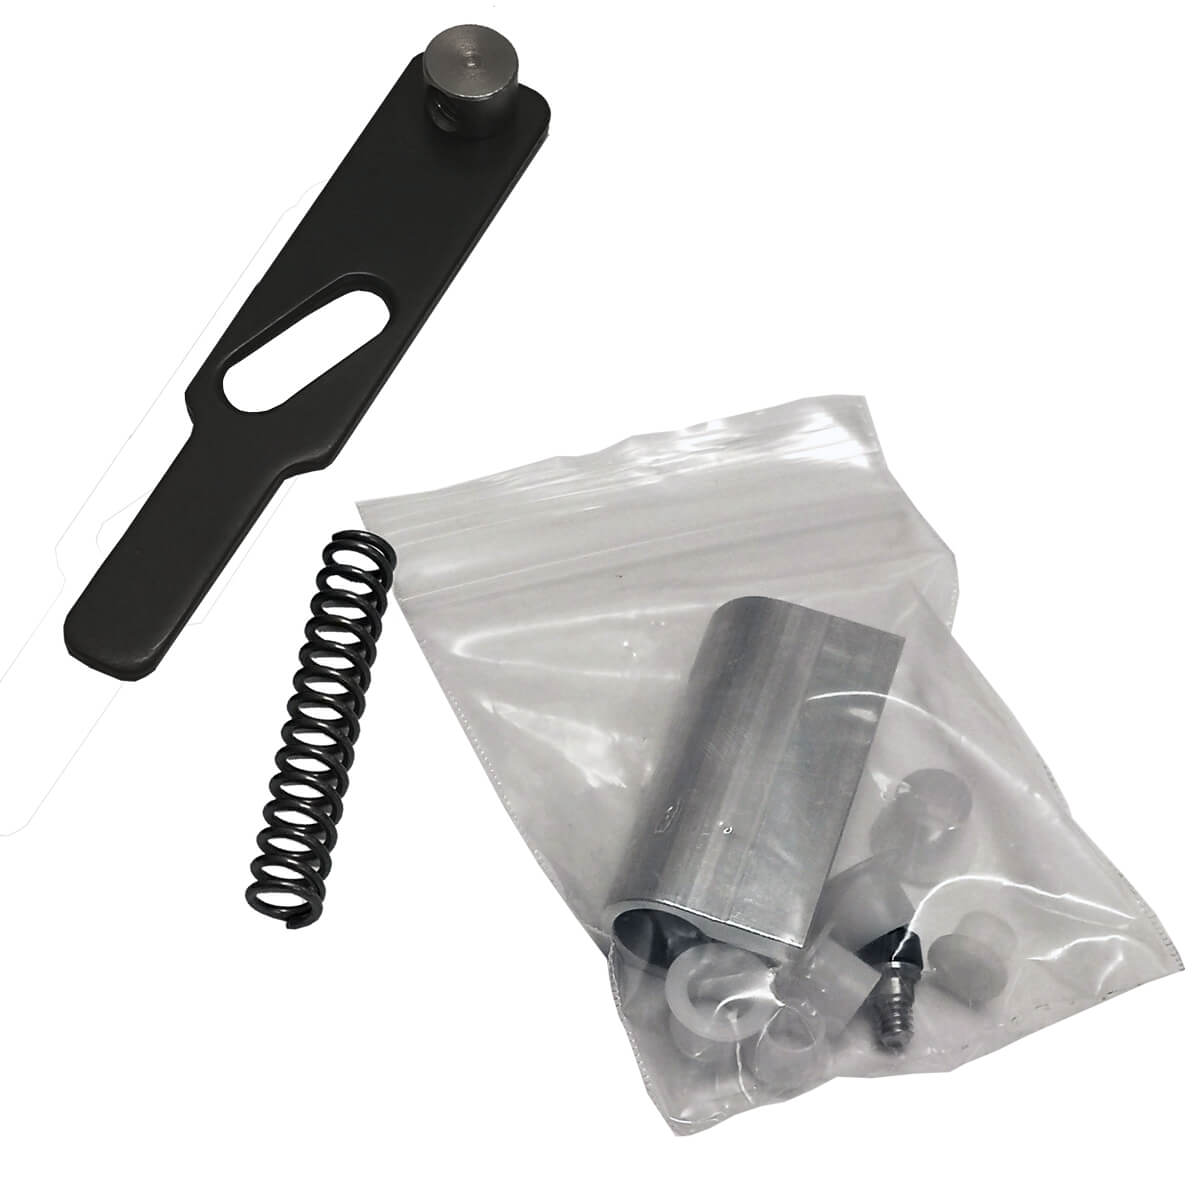 Adjustar Handle Repair Kit NorthStar